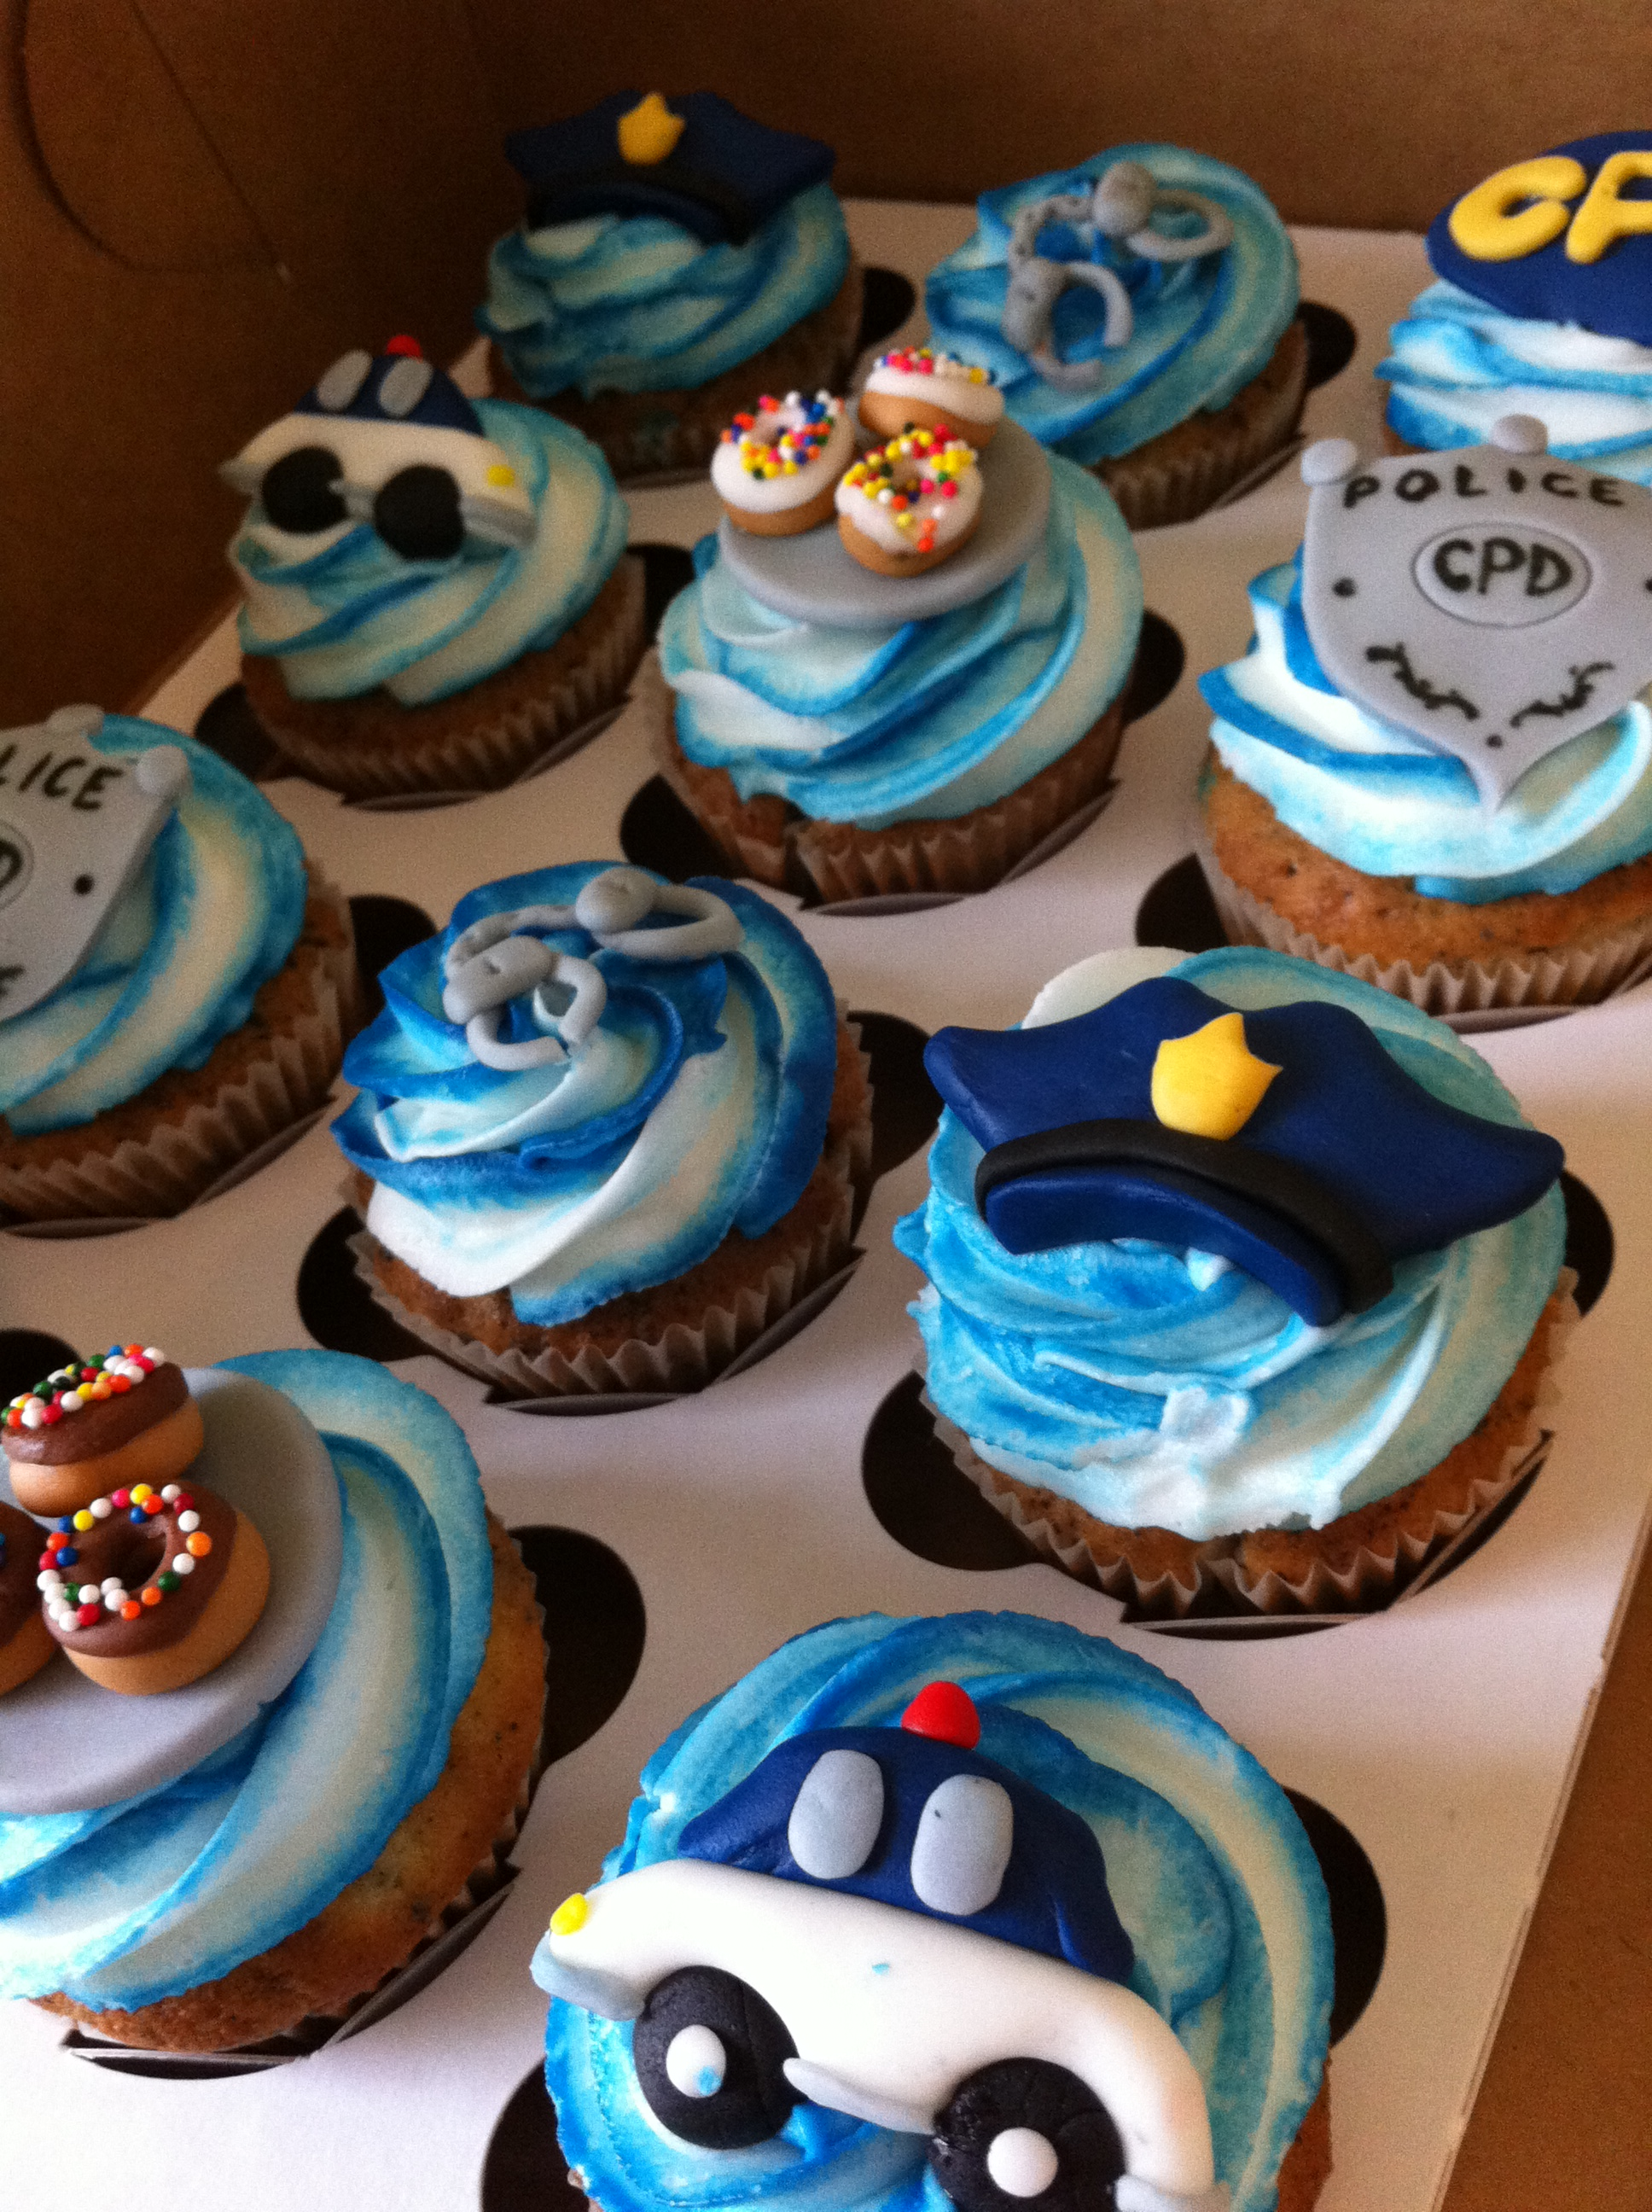 Cake Decorations For Police Cake : Police themed cupcakes Lolo s Cakes & Sweets